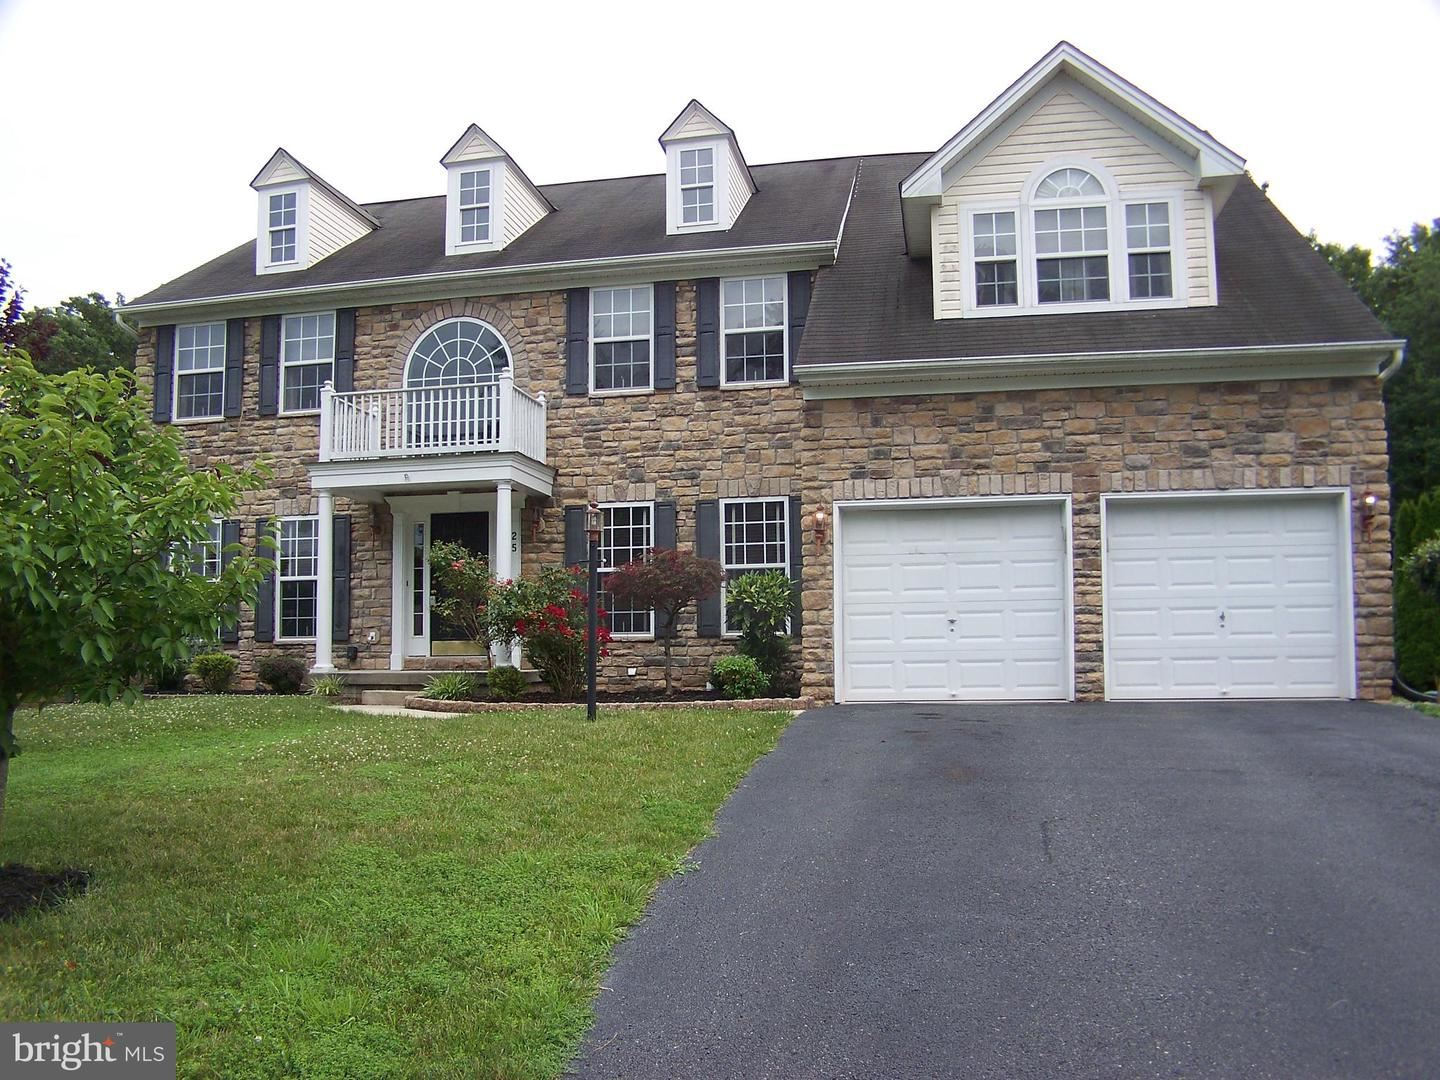 25 ALICIA CT, North East, MD 21901 - MLS#: MDCC2000624